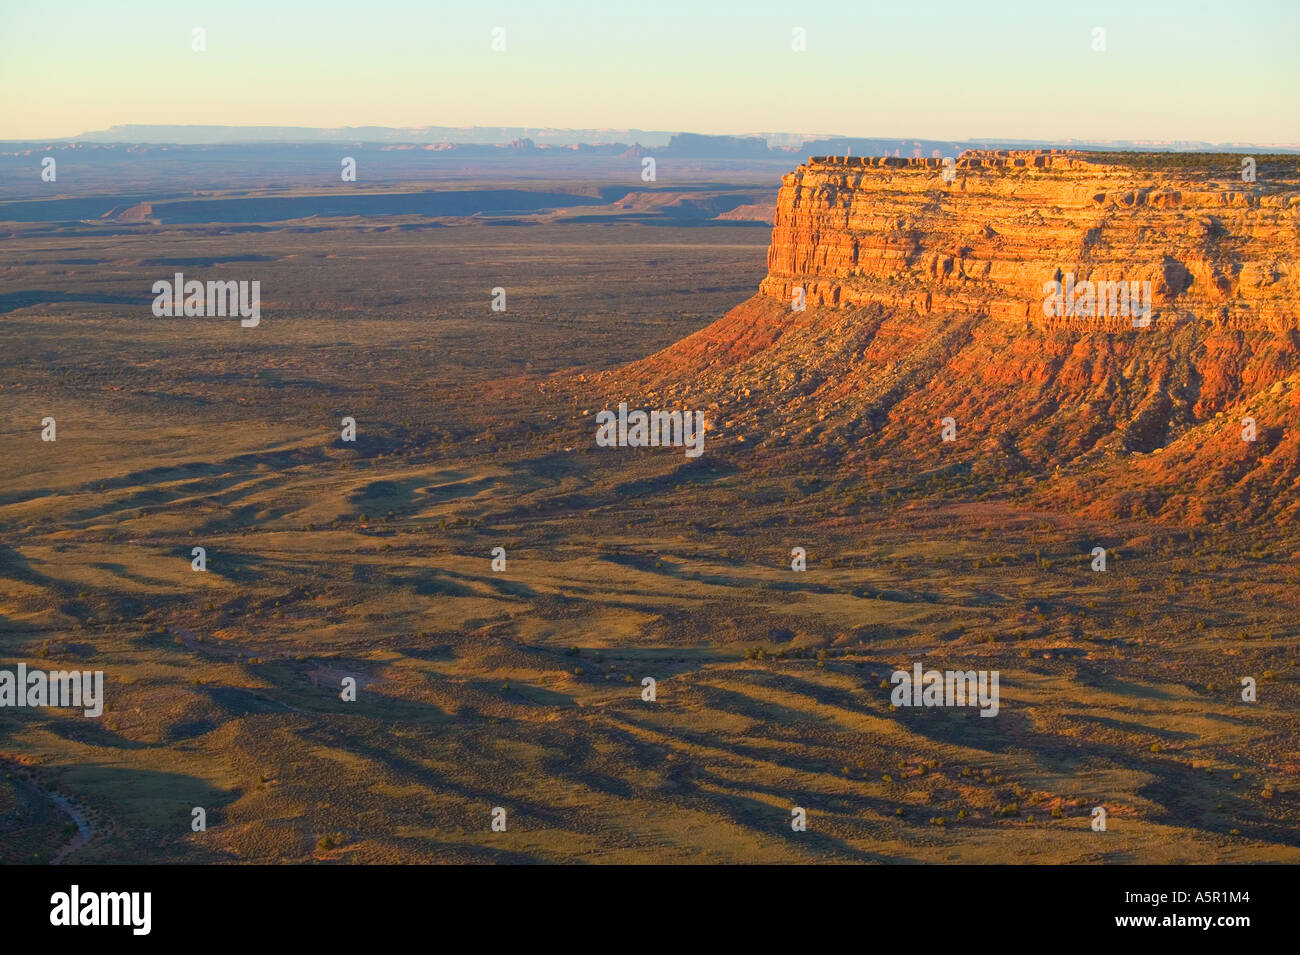 overview of southwestern desert buttes and mountains at sunrise, outside Bluff,Utah - Stock Image